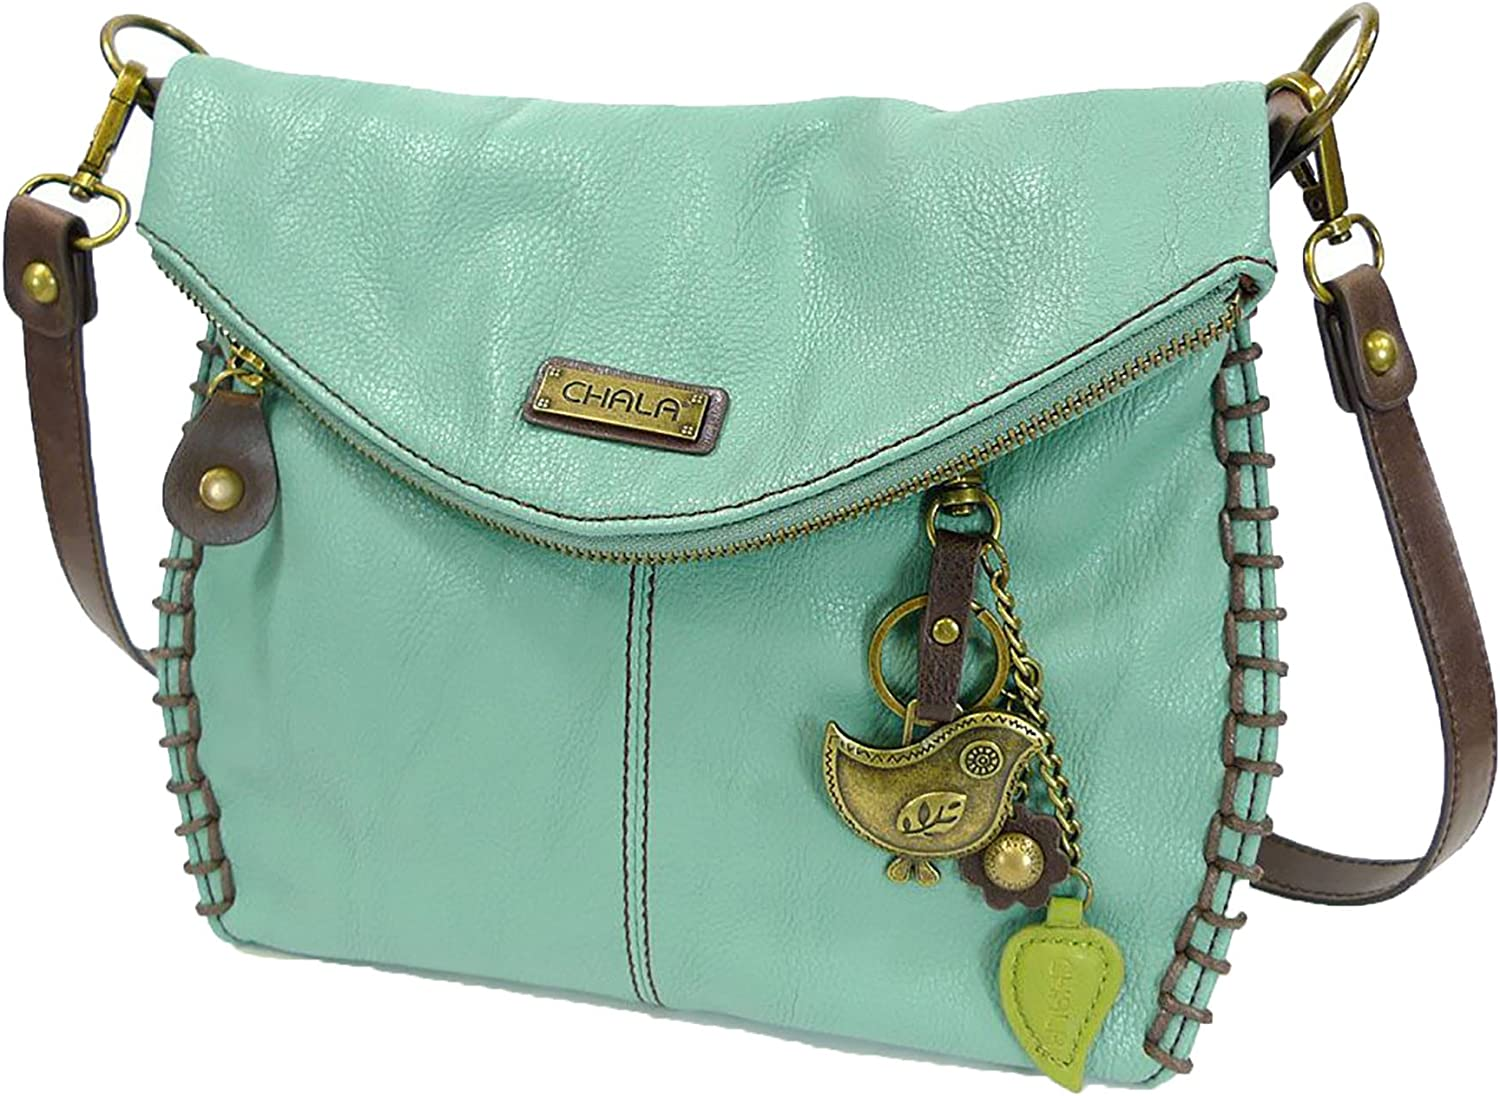 Chala Charming Teal Crossbody Bag With Flap Top and Zipper or Shoulder Handbag